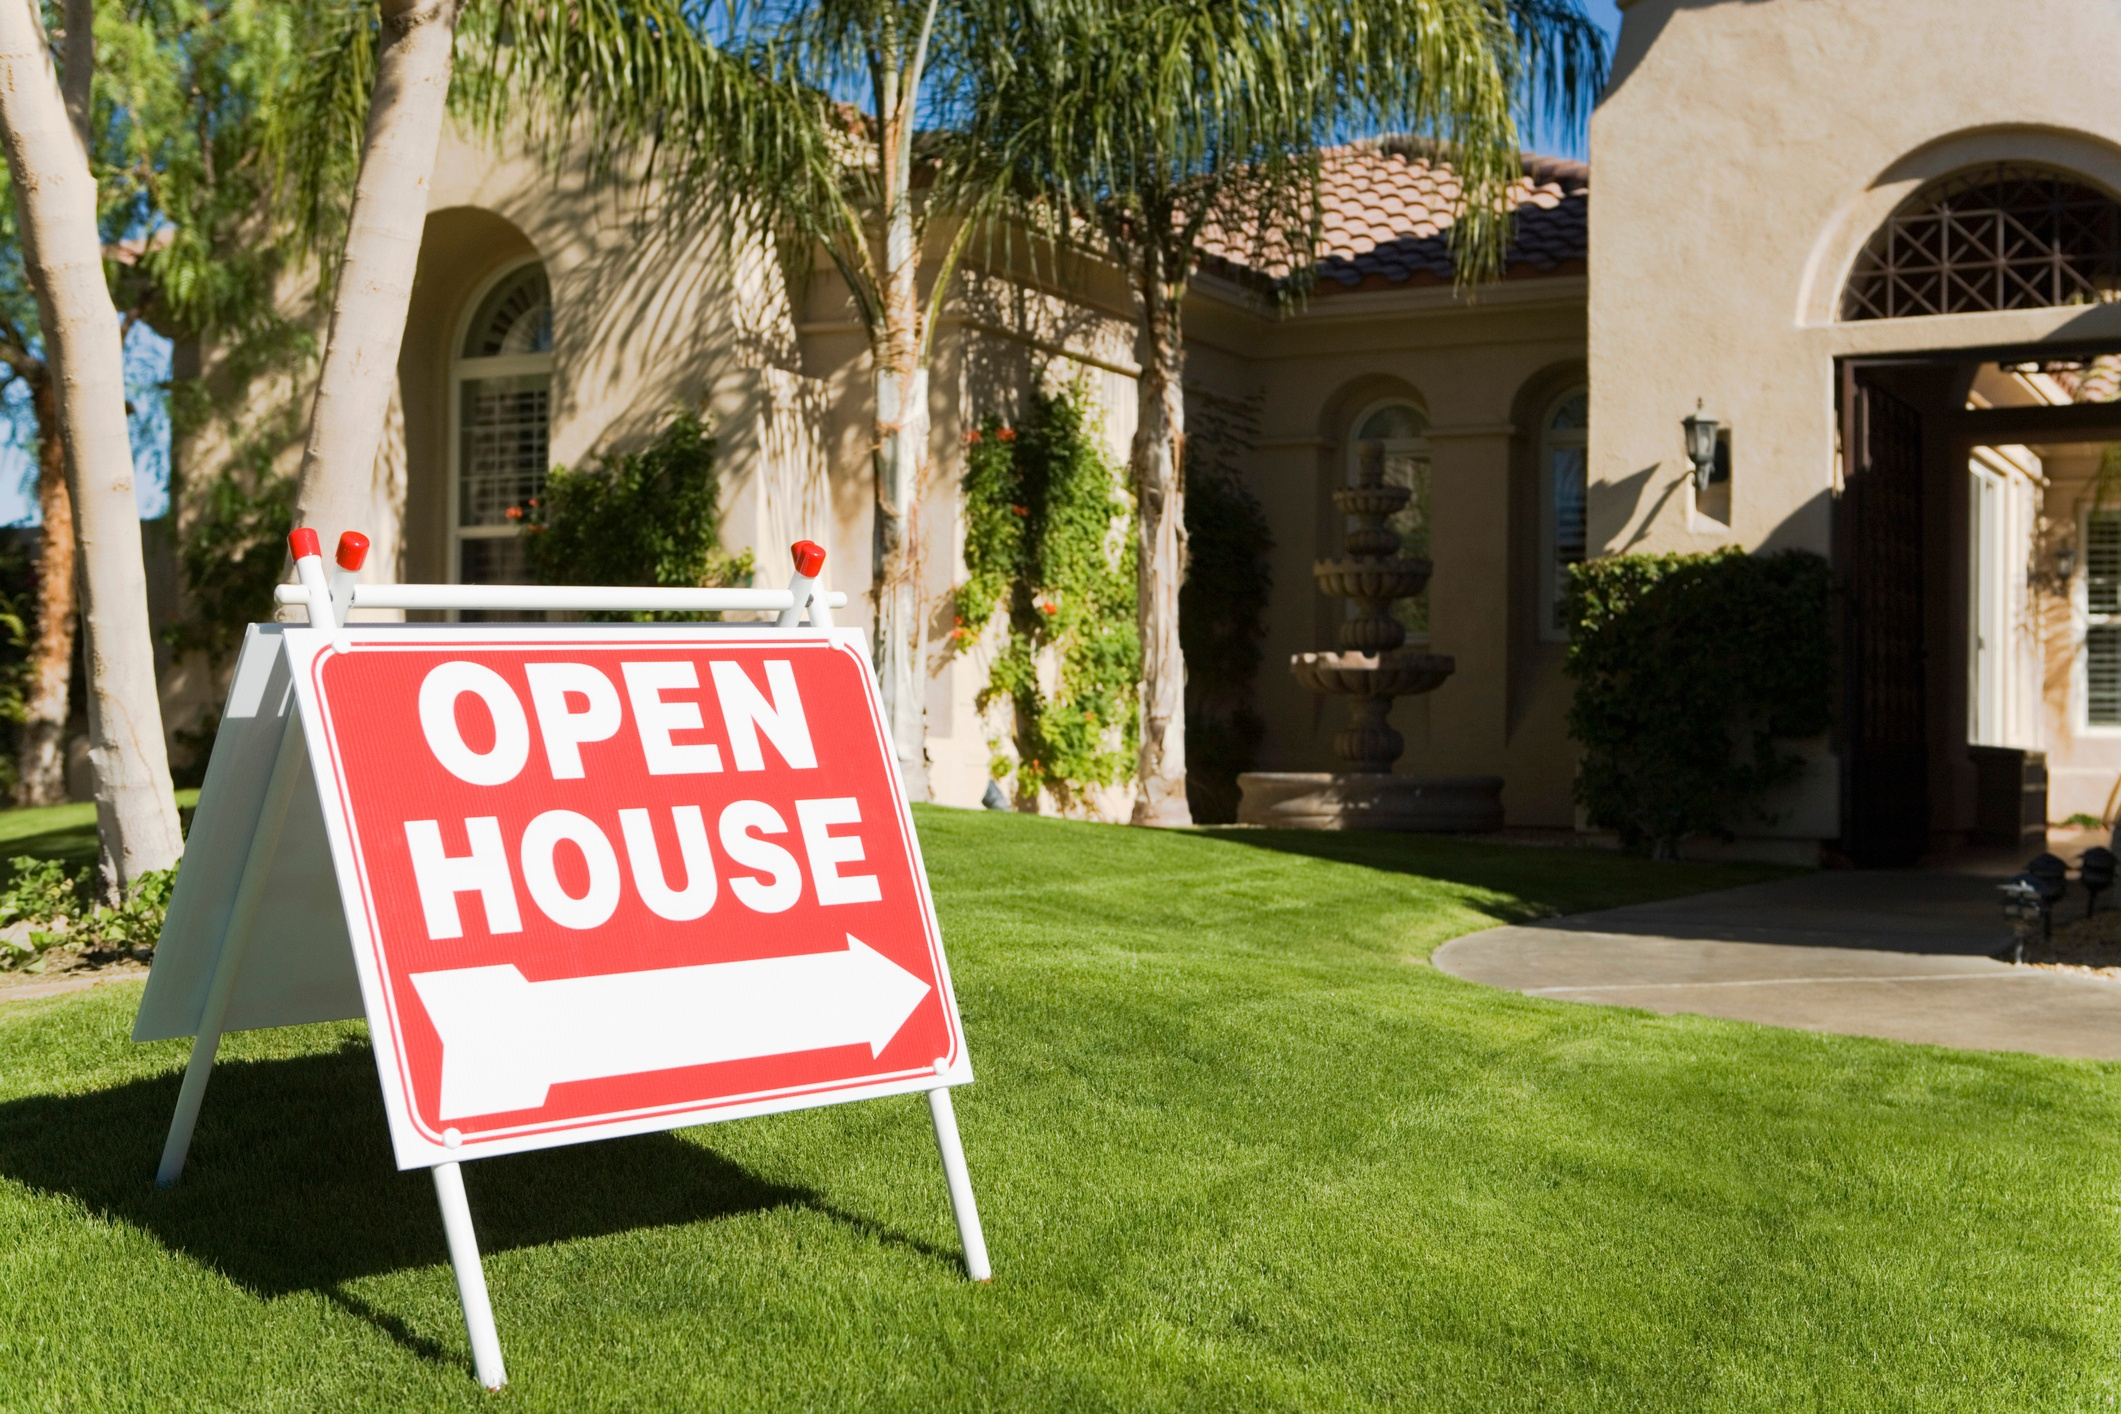 S&D's Guide to Open House Etiquette for Home Buyers